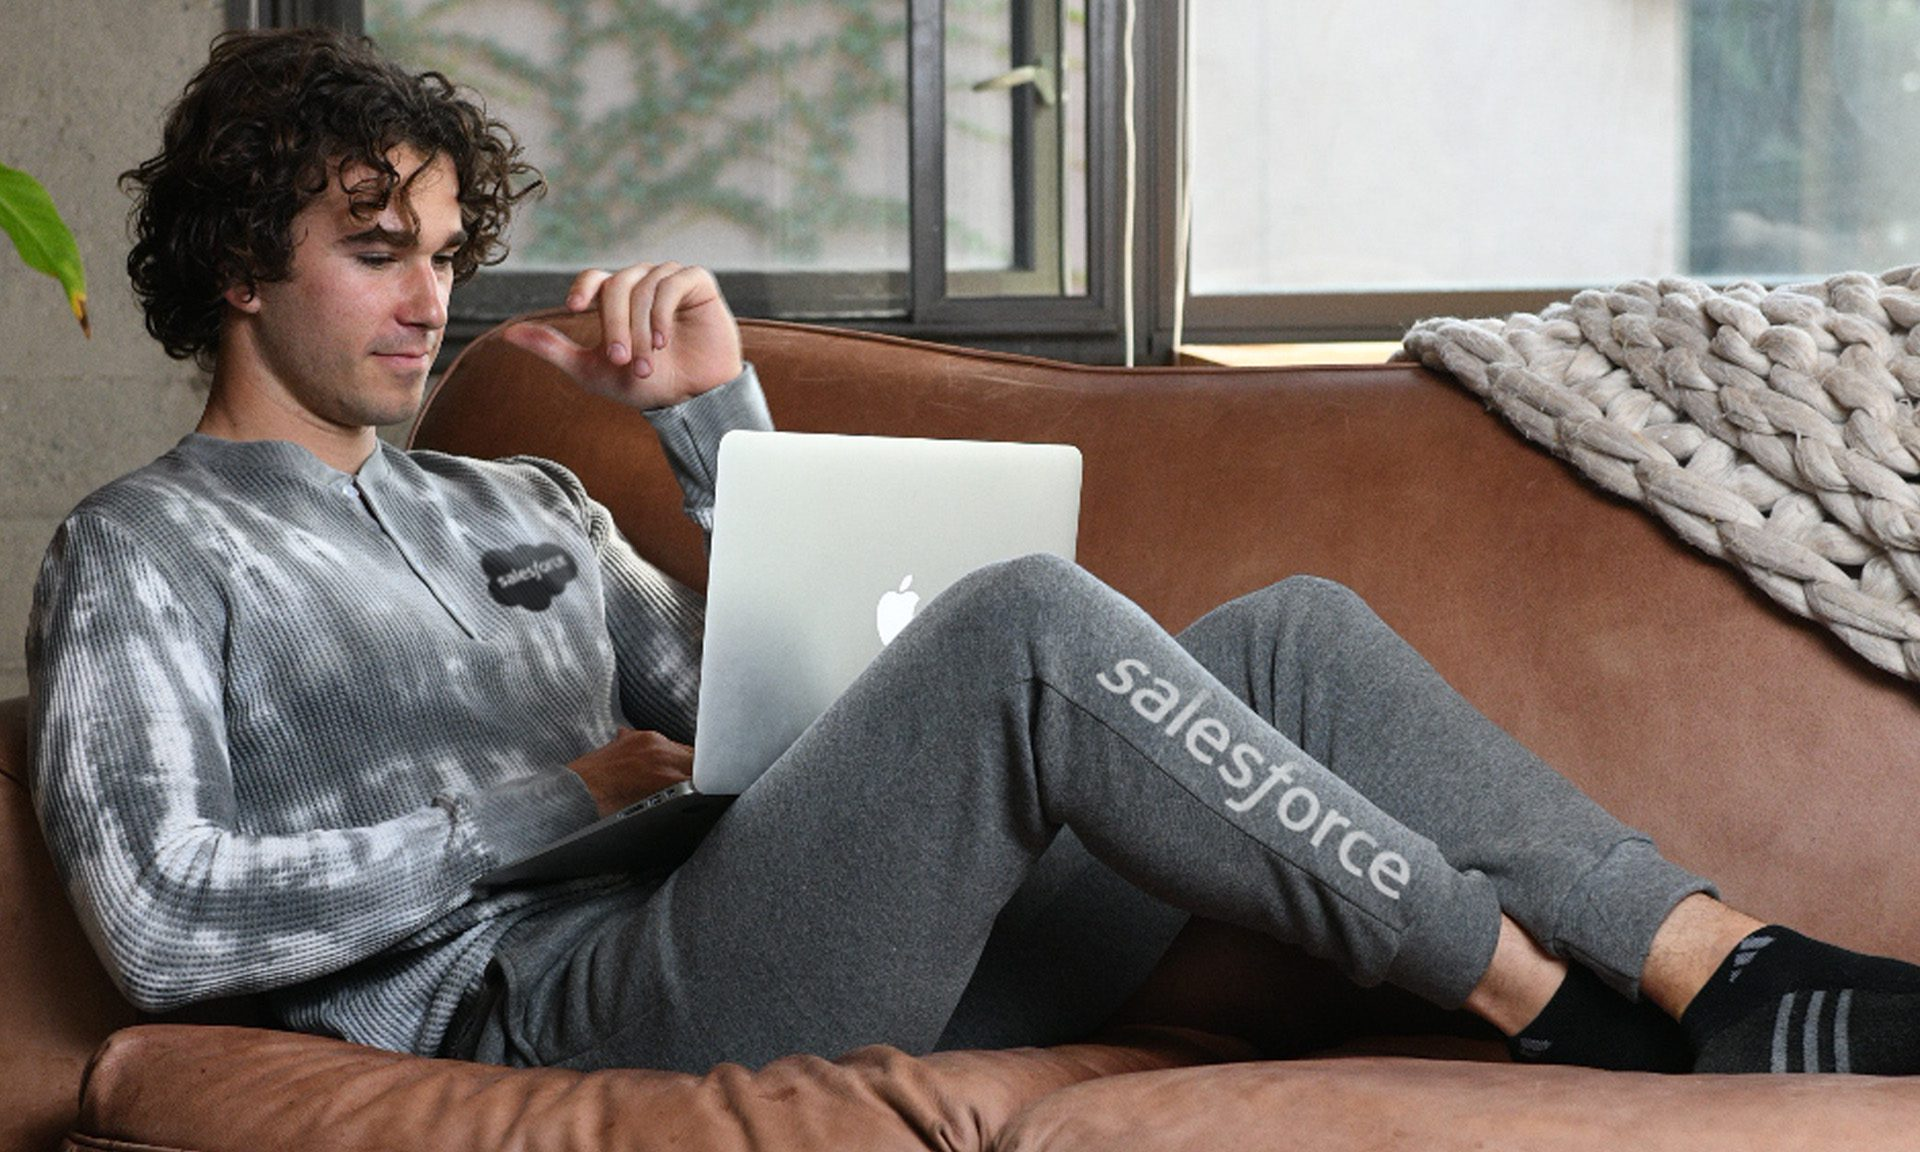 man on laptop with thermal henley and jogger